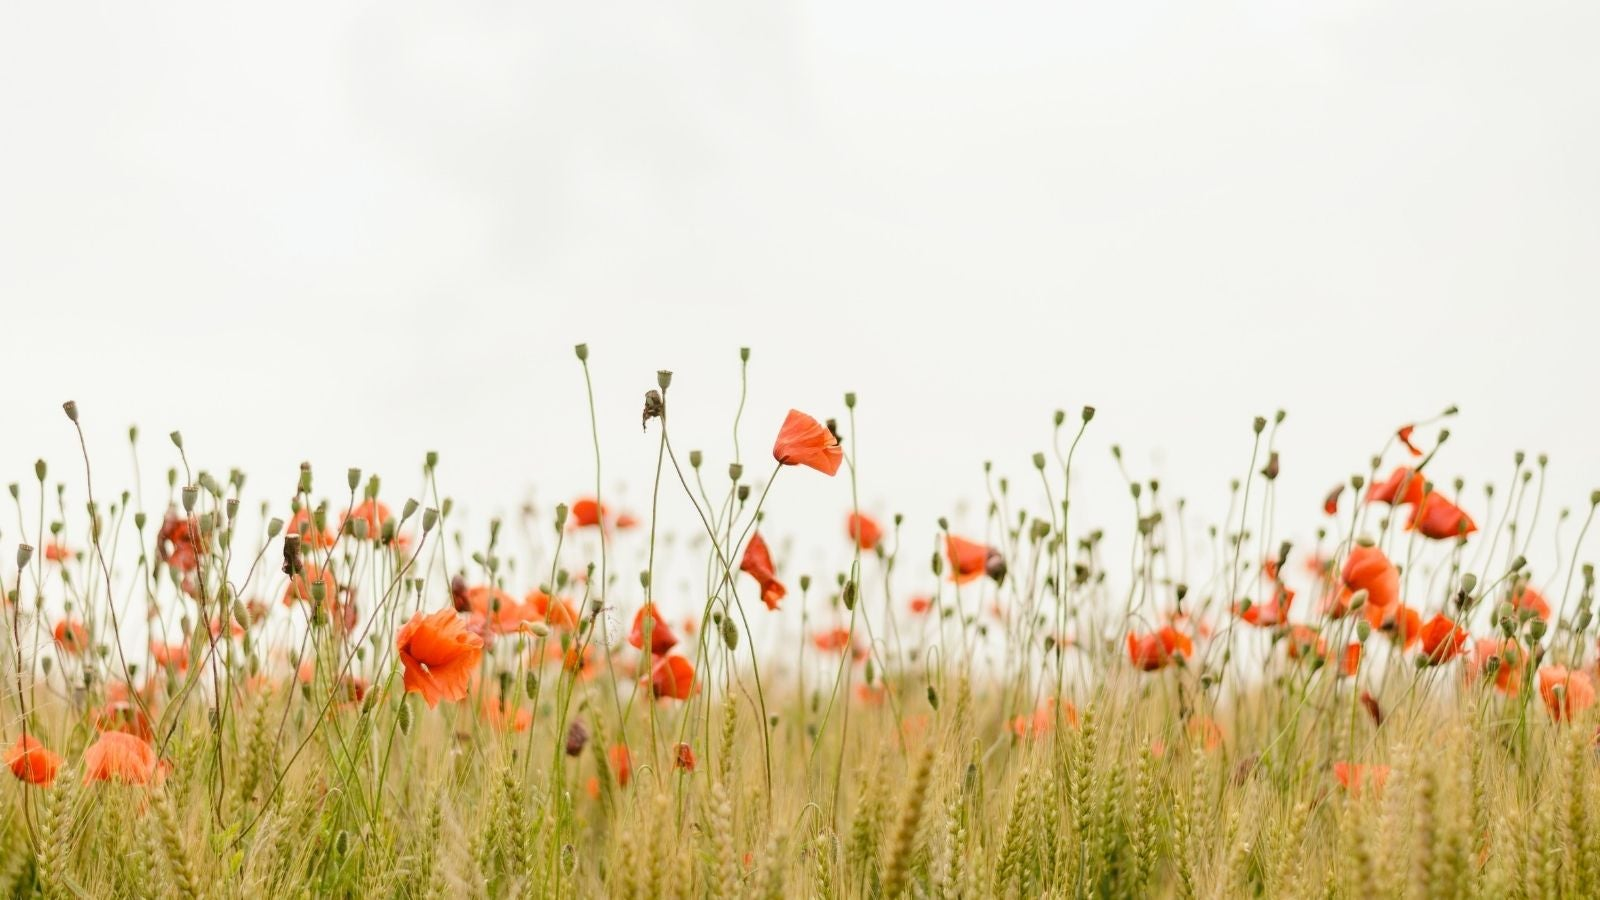 Field of poppies and tall grass